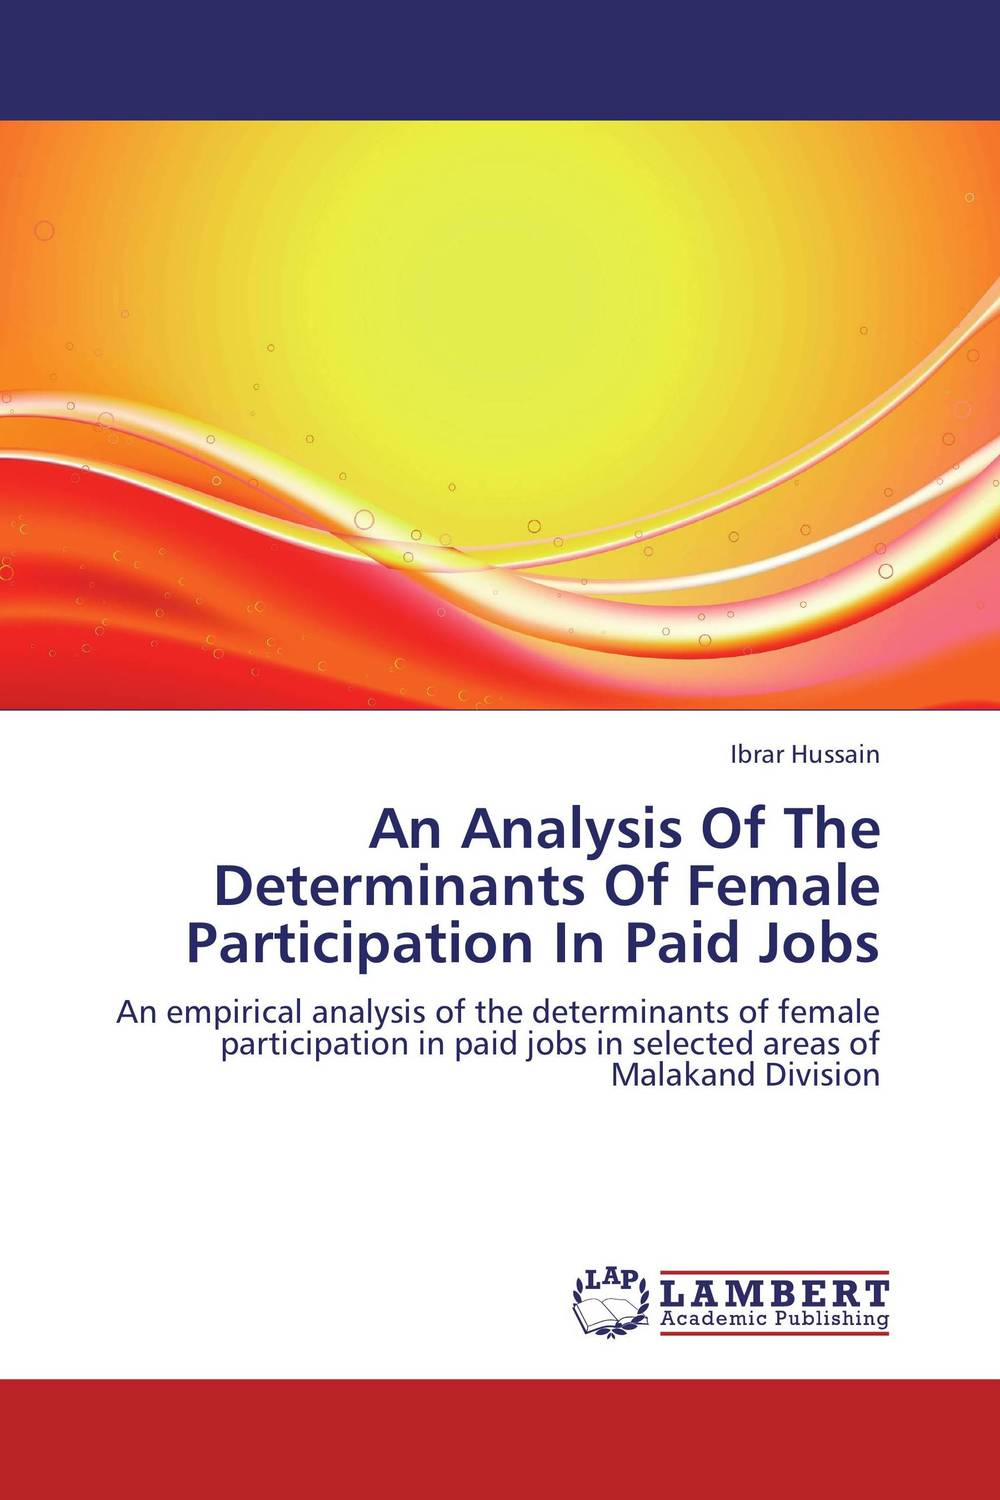 An Analysis Of The Determinants Of Female Participation In Paid Jobs socio linguistic analysis of the settlers in the brazilian amazon